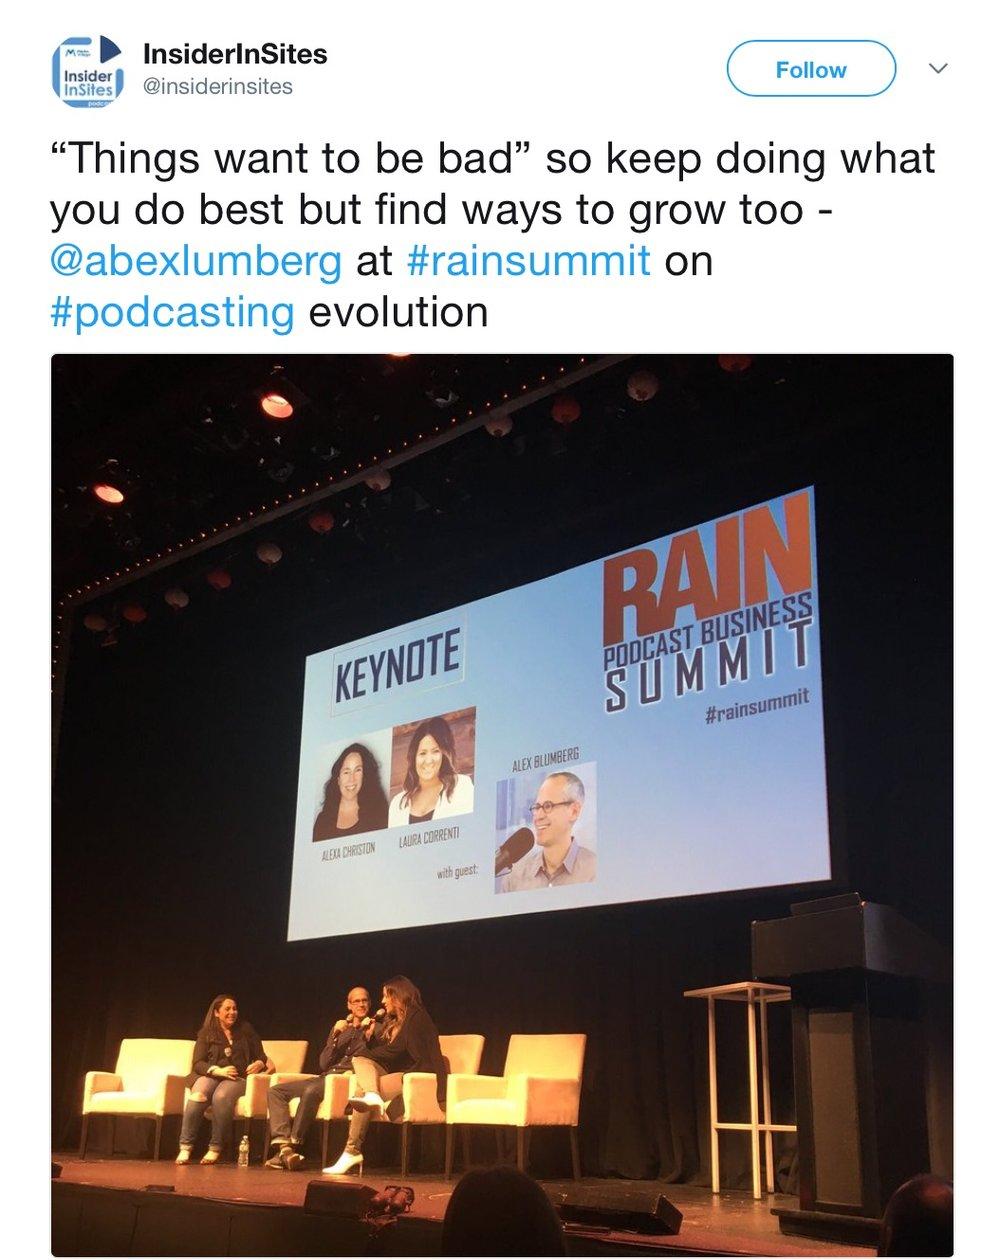 "InsiderInSites_on_Twitter___""Things_want_to_be_bad""_so_keep_doing_what_you_do_best_but_find_ways_to_grow_too_-__abexlumberg_at__rainsummit_on__podcasting_evolution…_https___t_co_dWKllJOj4S_.jpg"